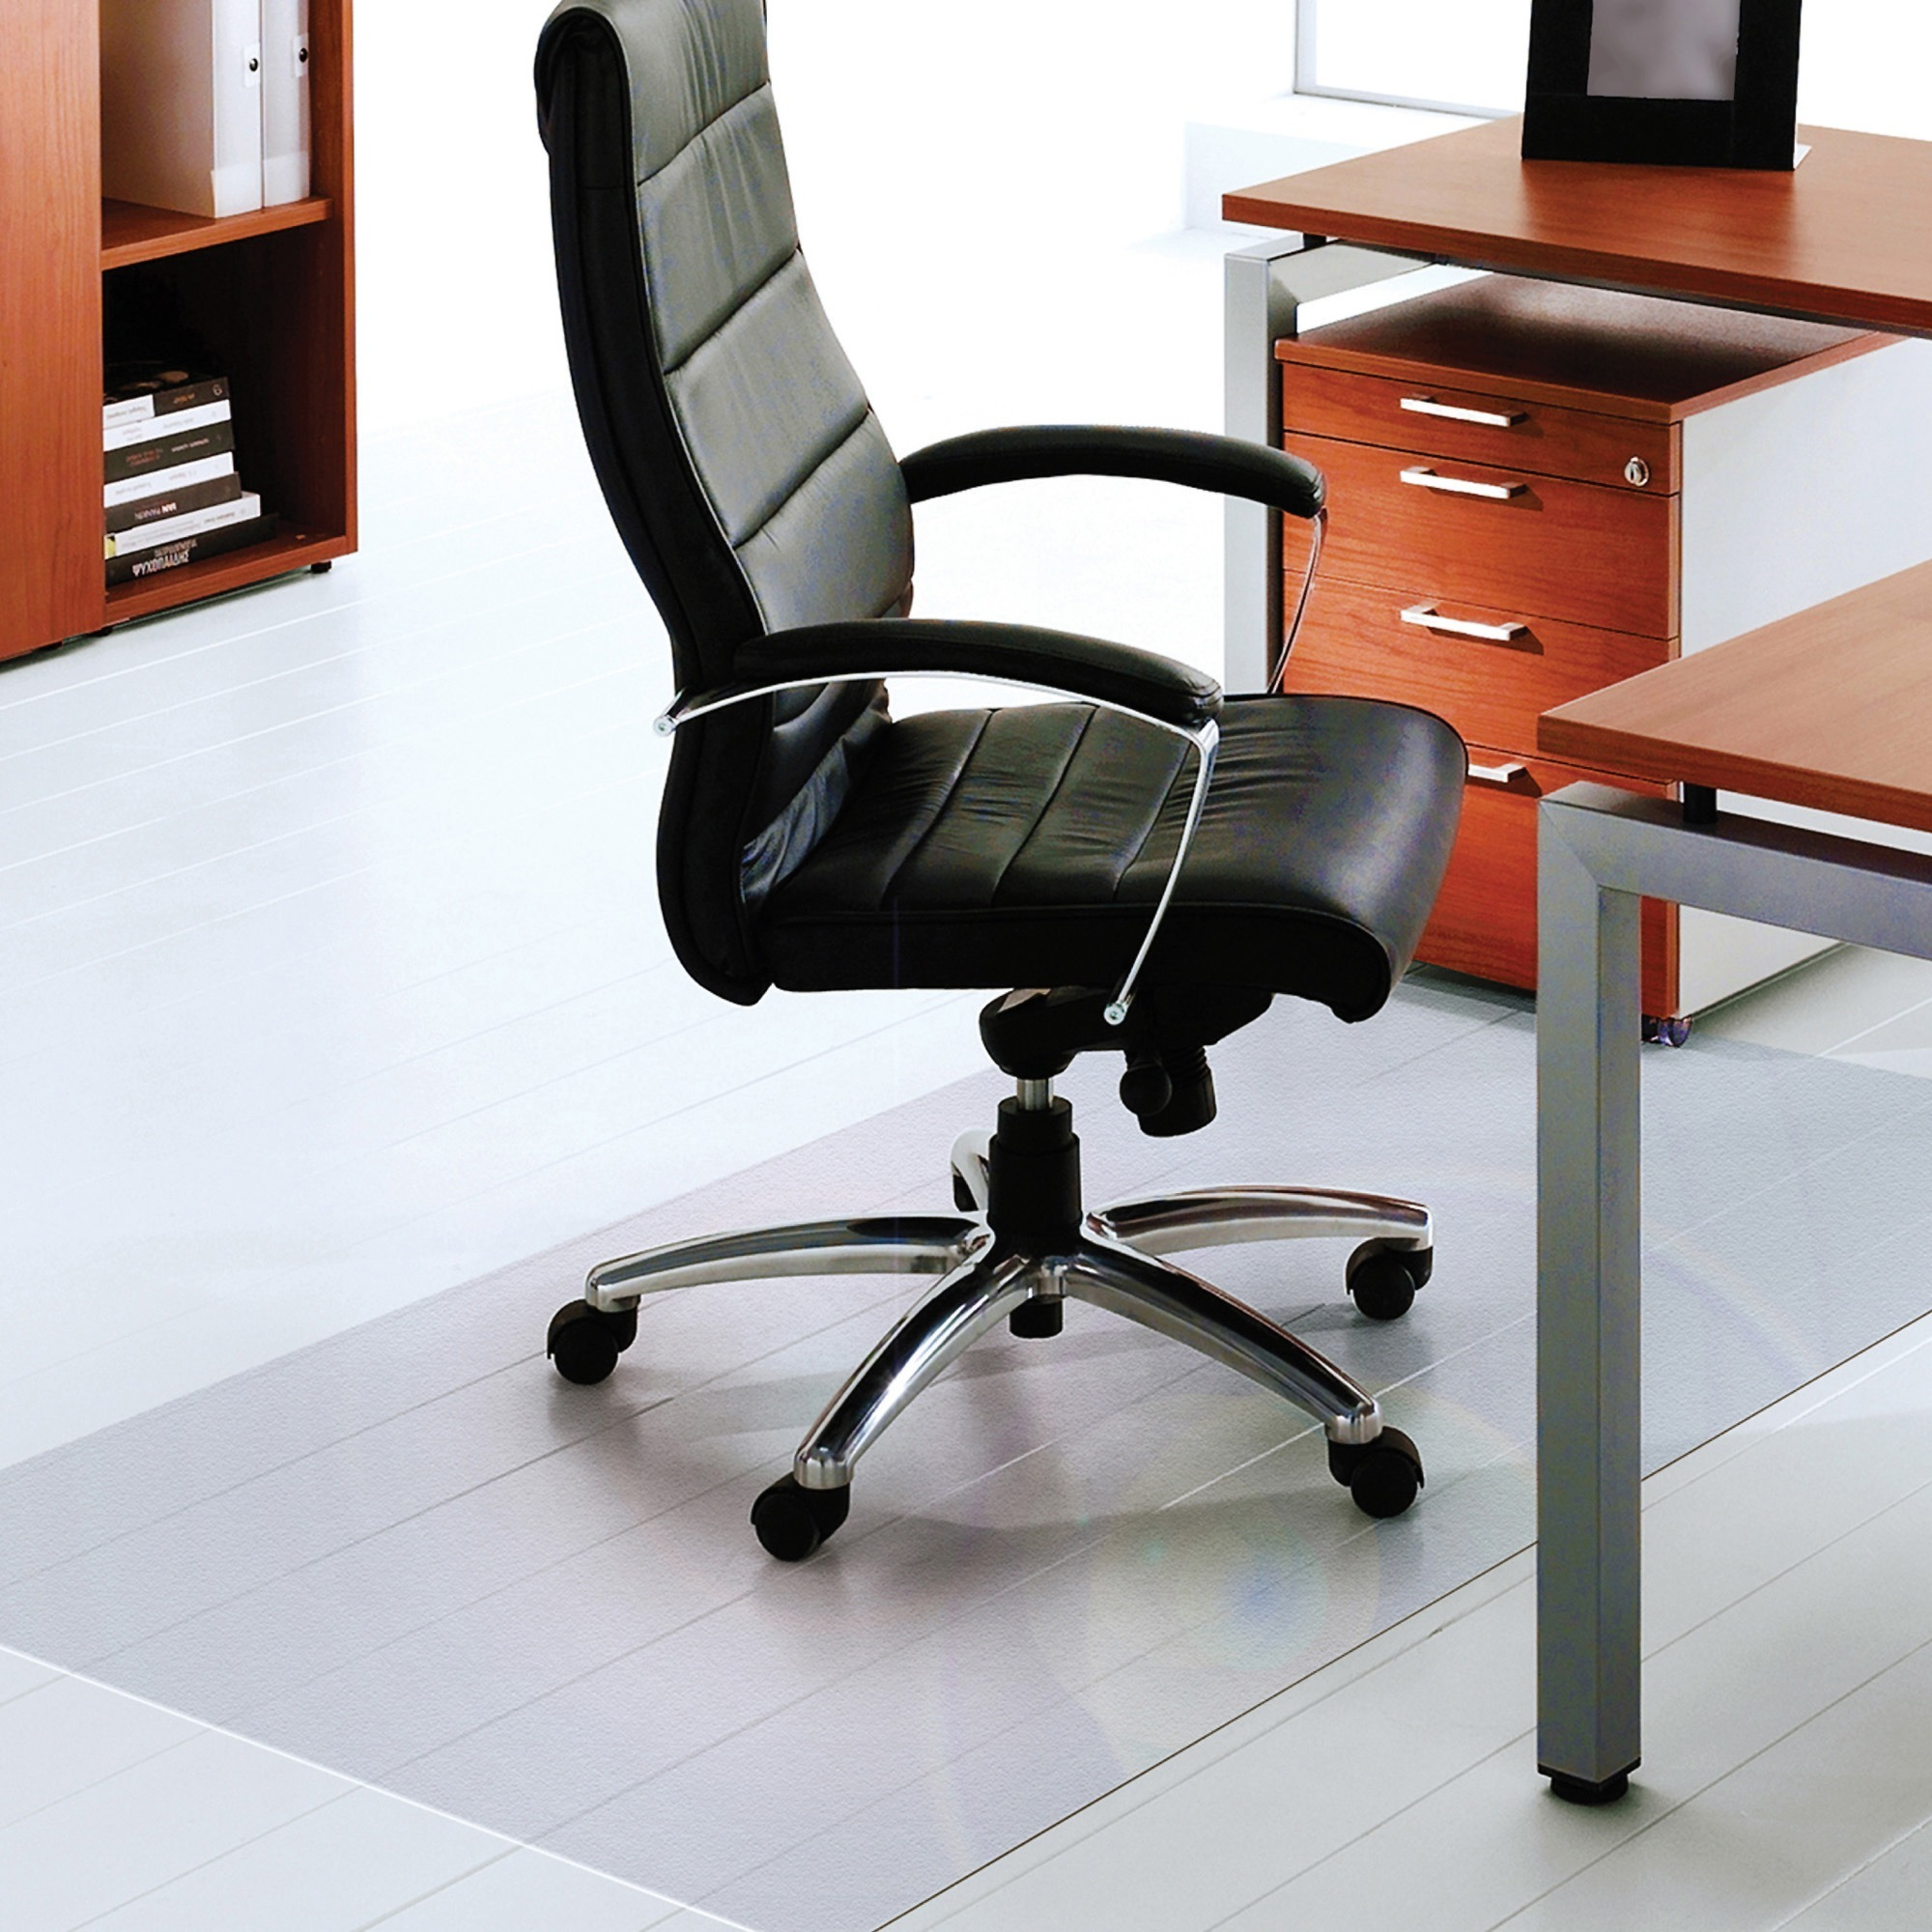 Cleartex Hard Floor L Protection Chairmat Home Office 60 1524 Mm Length X Width 75 Mil 1 91 Thickness